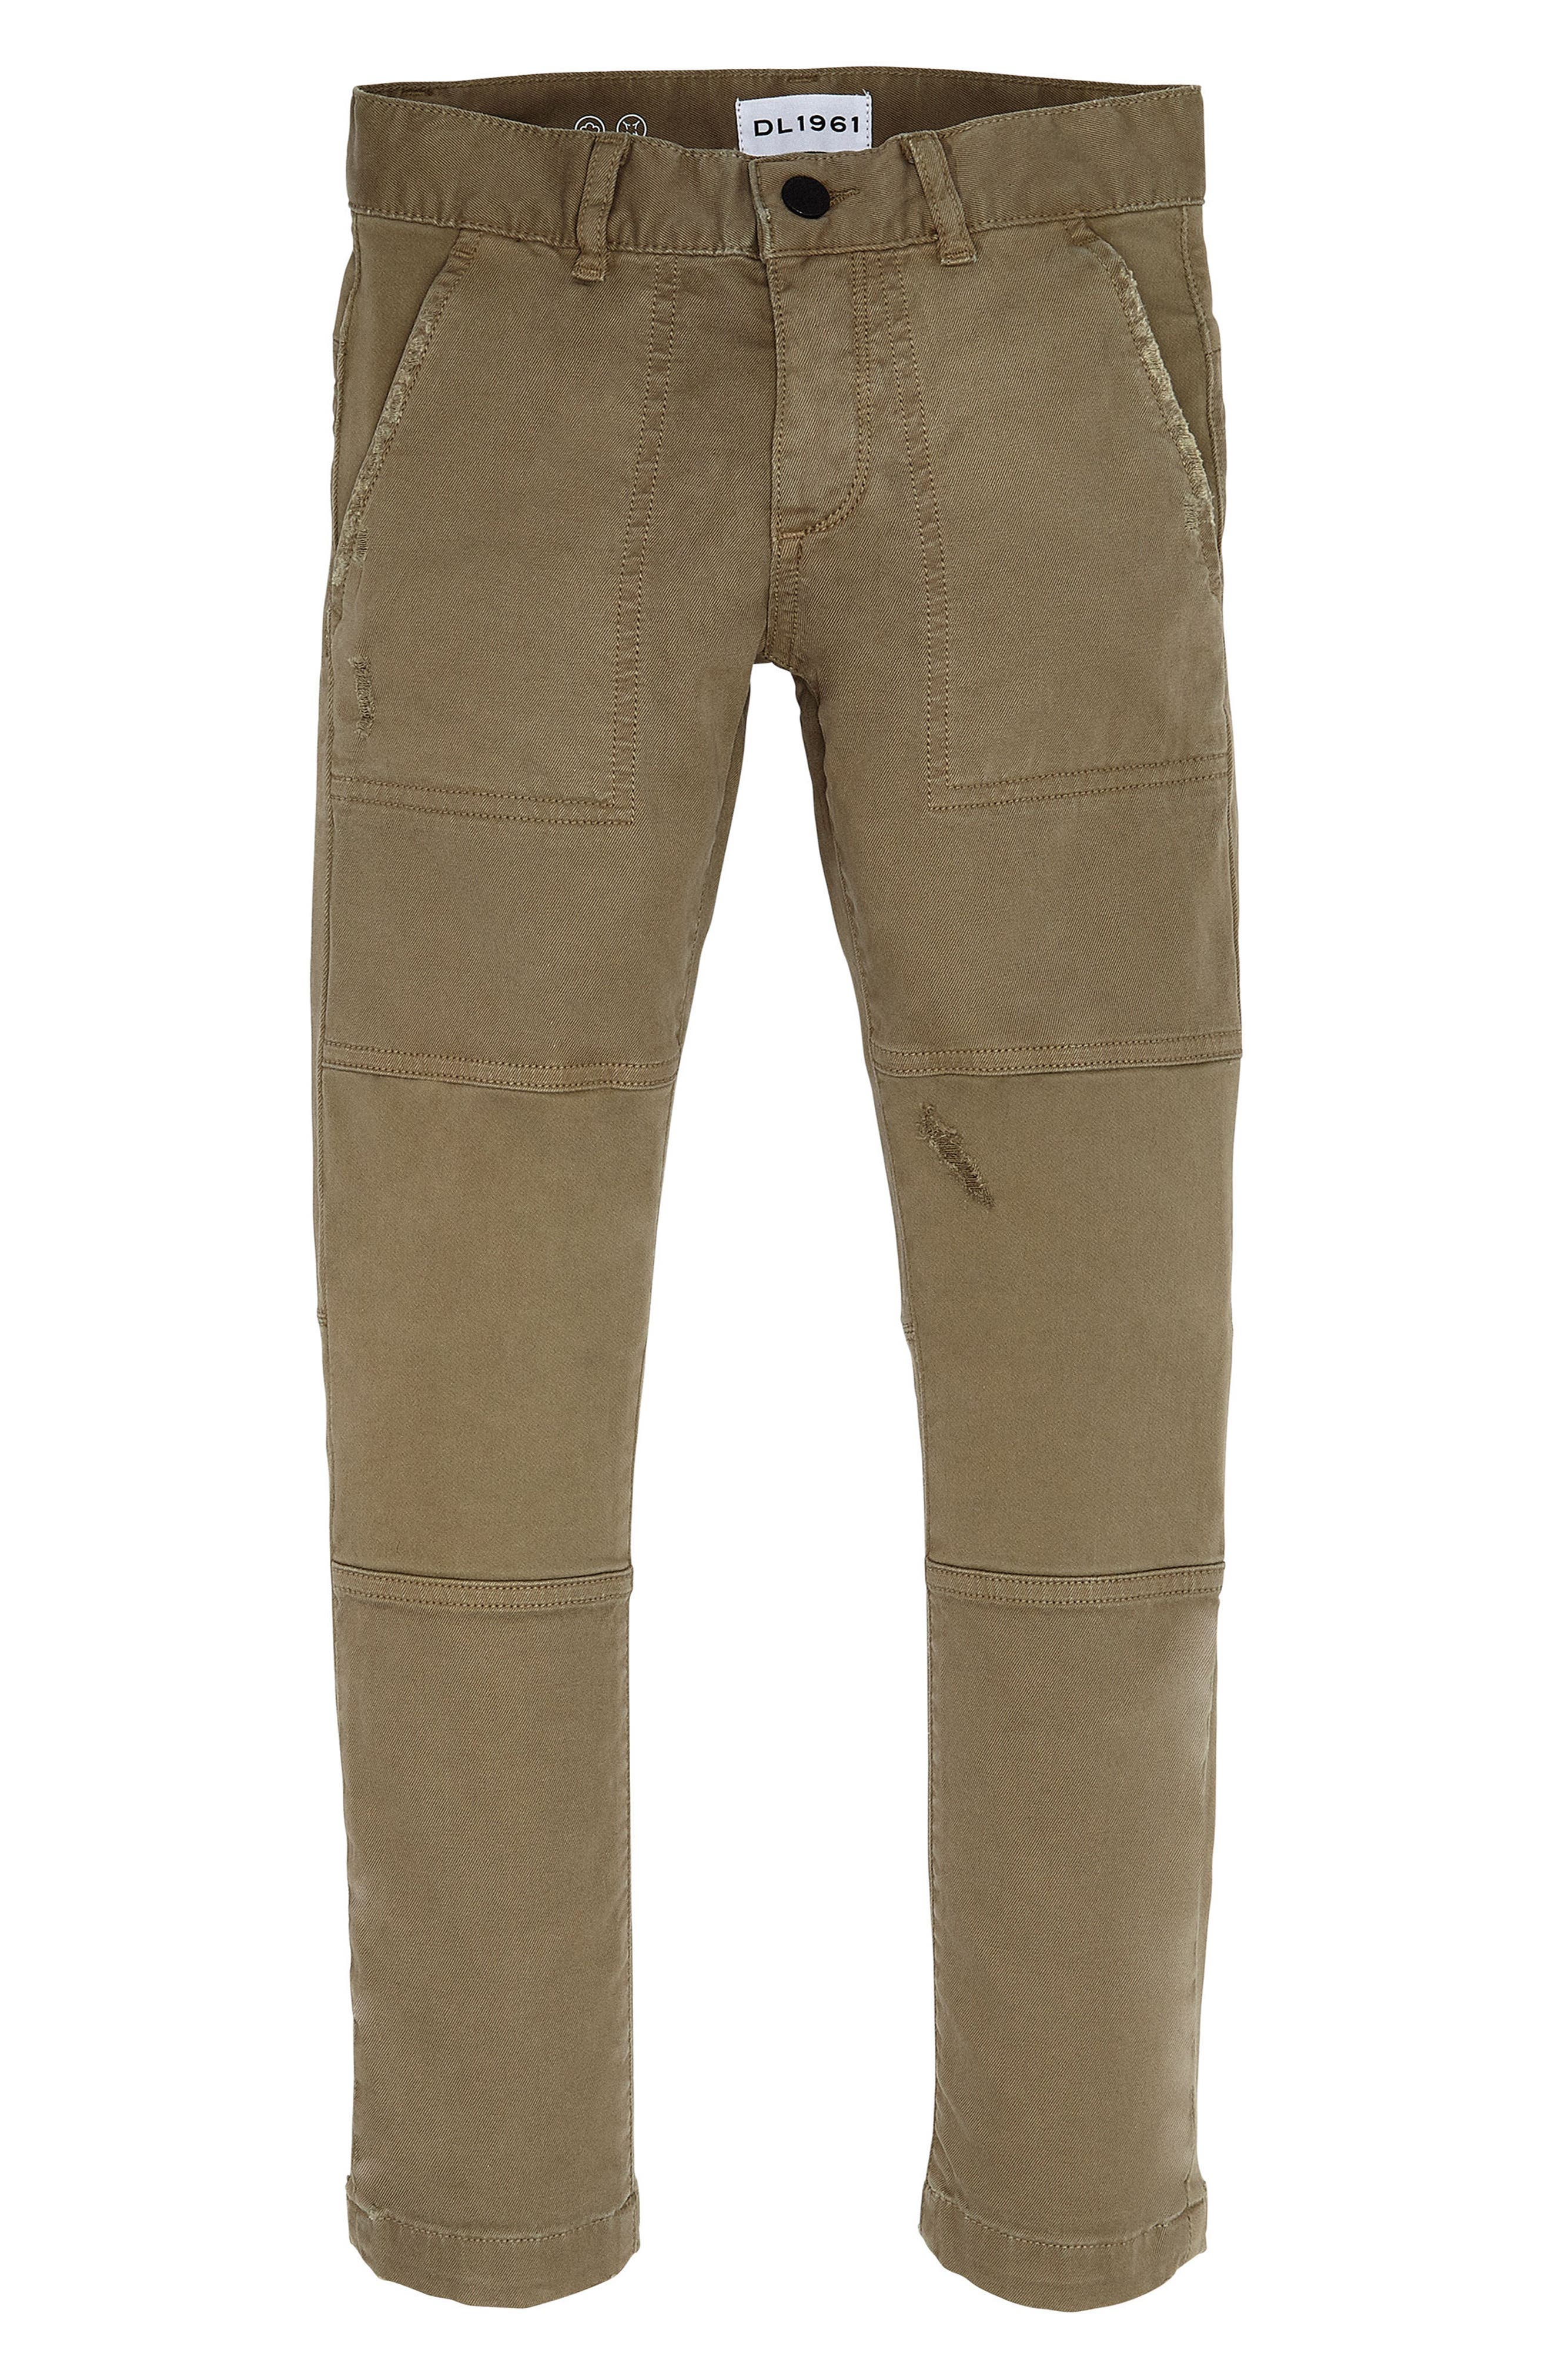 Hawke Skinny Fit Utility Jeans,                         Main,                         color, Regime